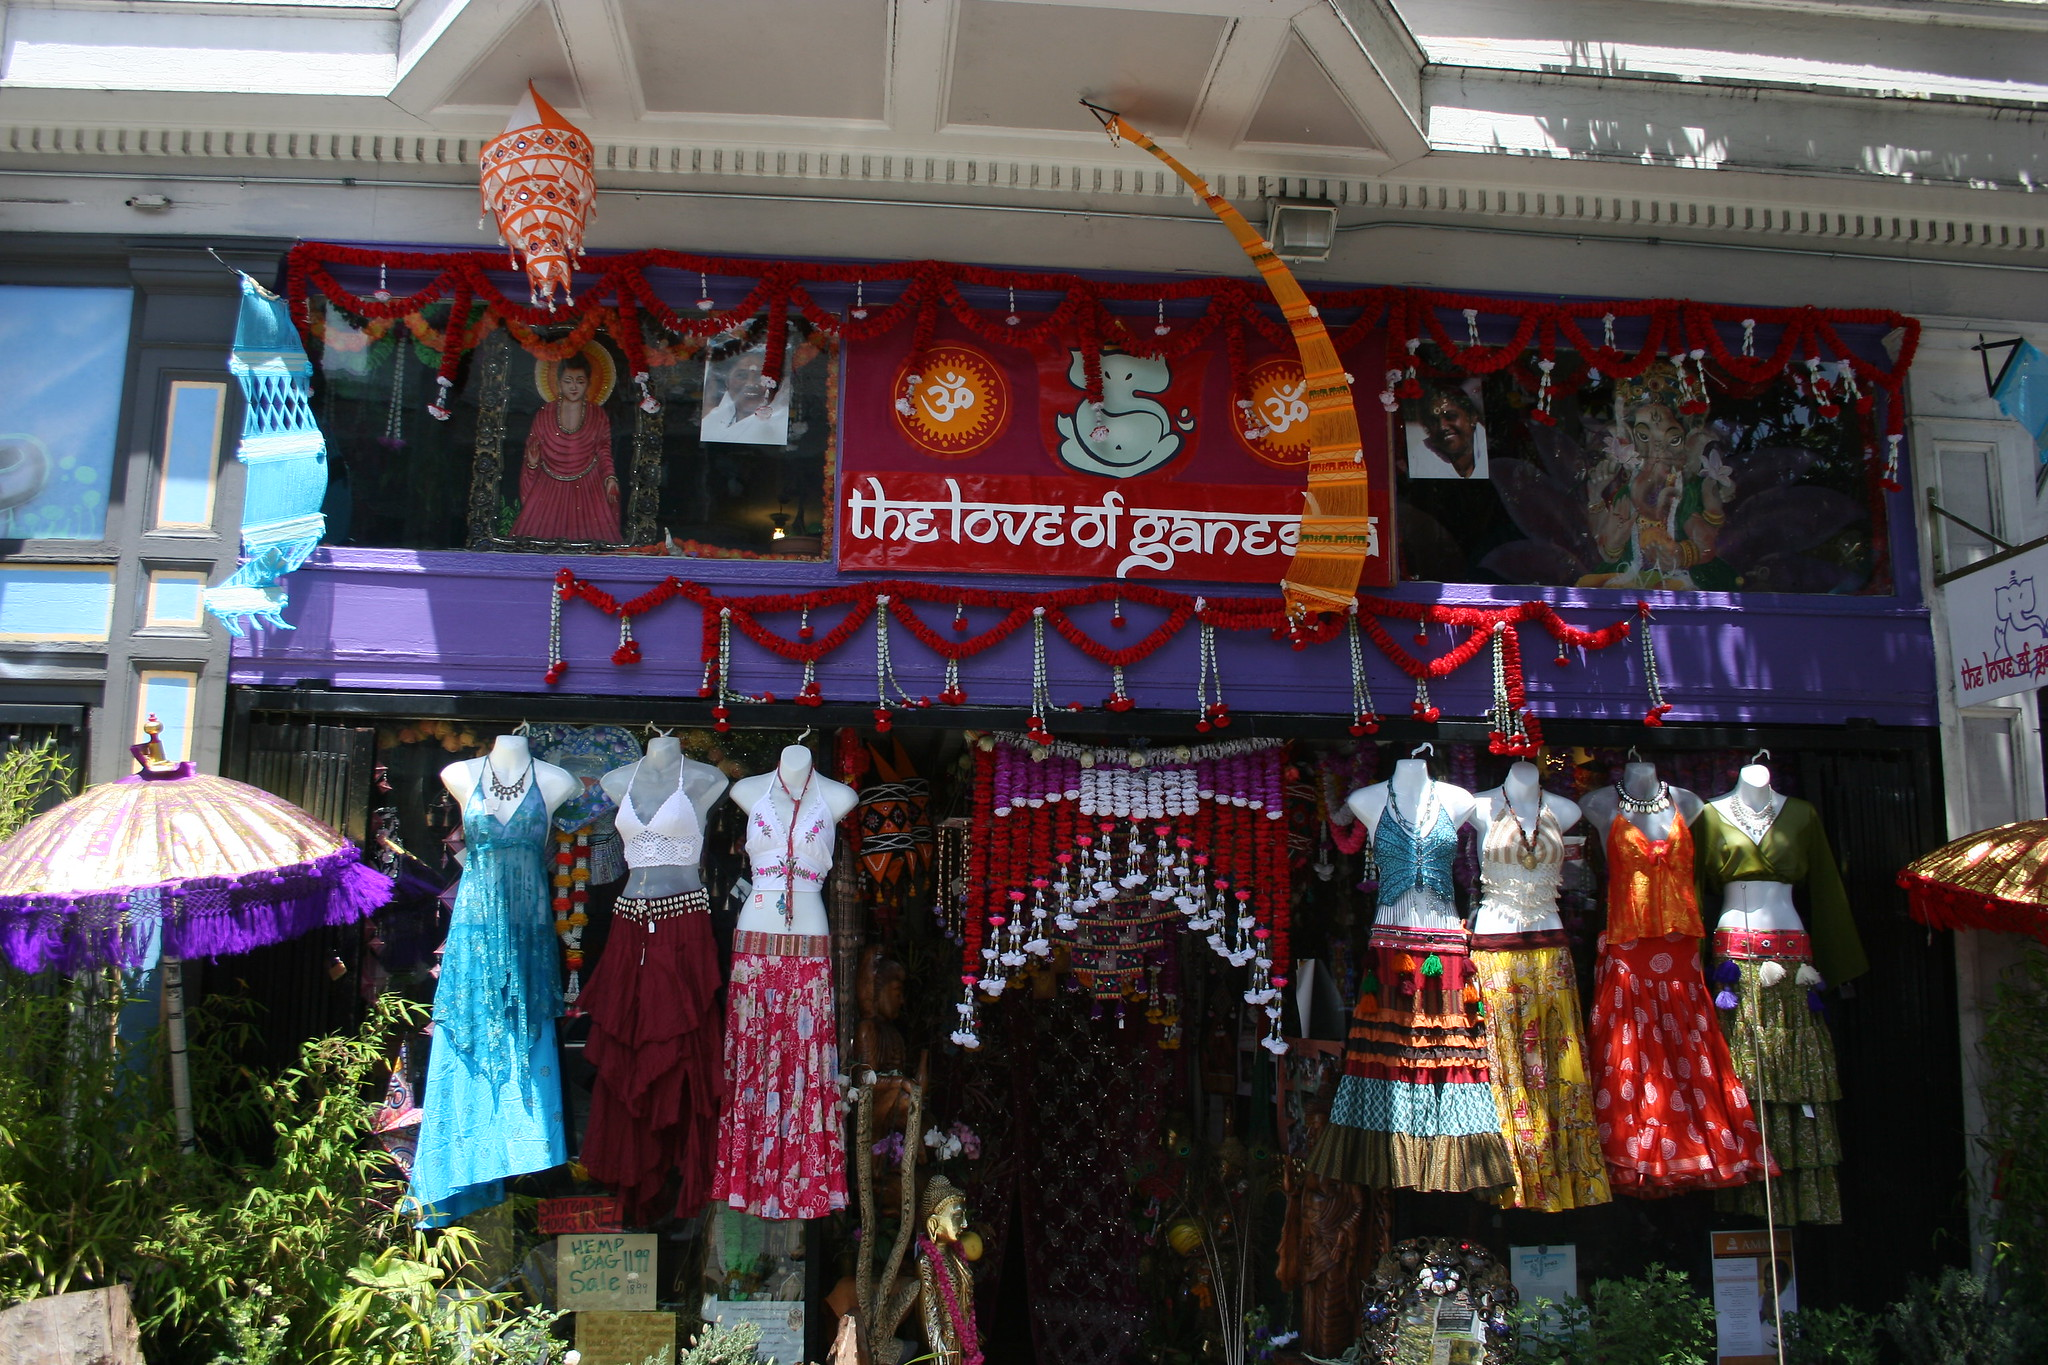 best shopping in San Francisco - The Love of Ganesha on Upper Haight Street in San Francisco - photo by Philippe Teuwen under CC BY-SA 2.0